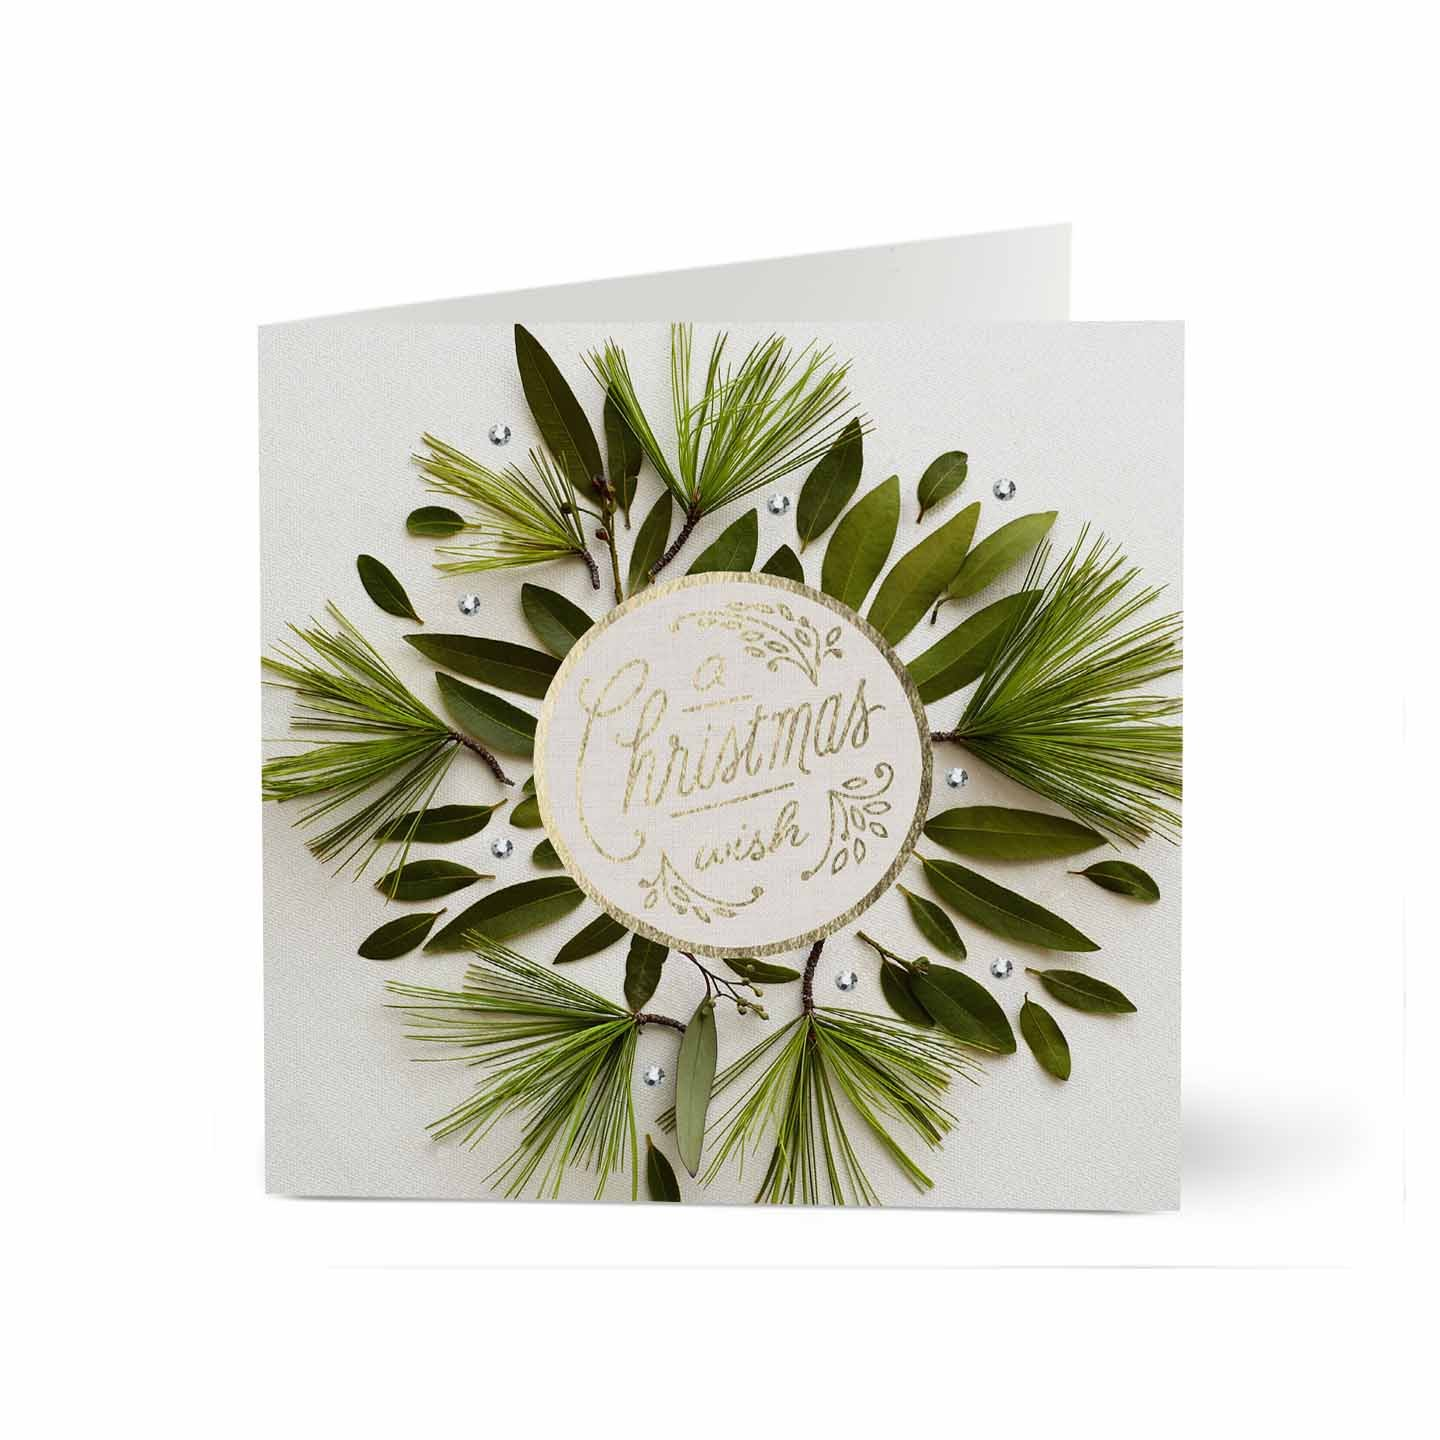 Hallmark business christmas card for employees and customers a hallmark business christmas card for employees and customers a wreathed wish pack of 25 greeting cards m4hsunfo